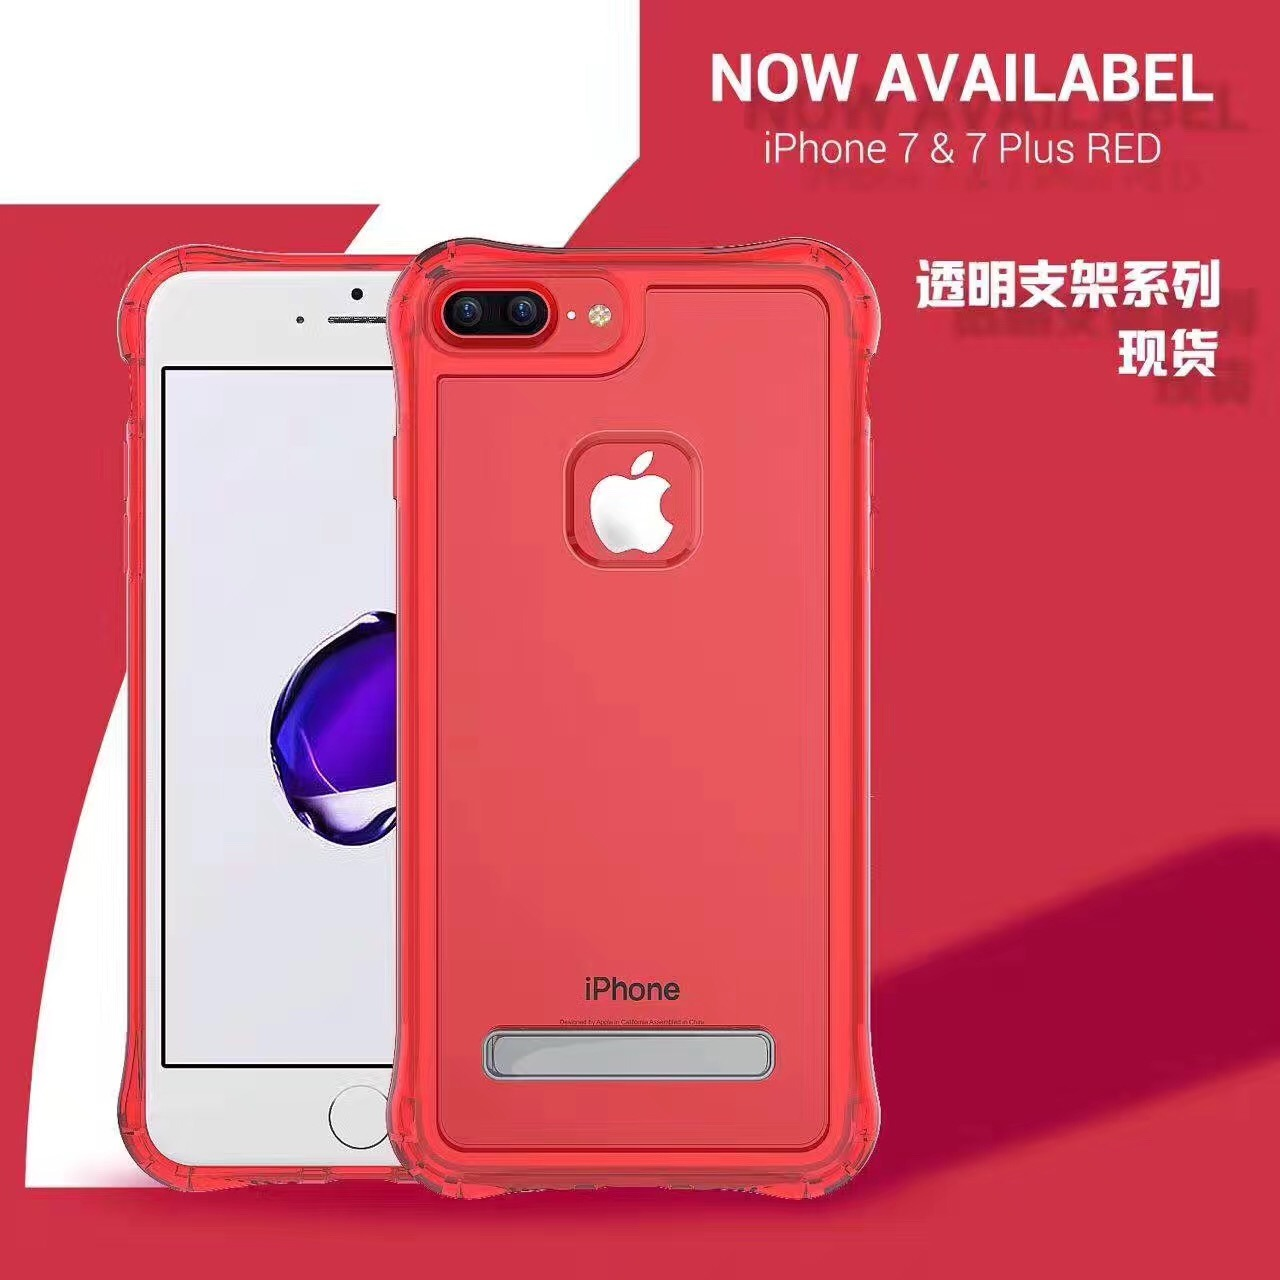 Mobile Phone China Red Defense Holder Transparent Protector Case Cover for iPhone 7 Plus 4.7 5.5